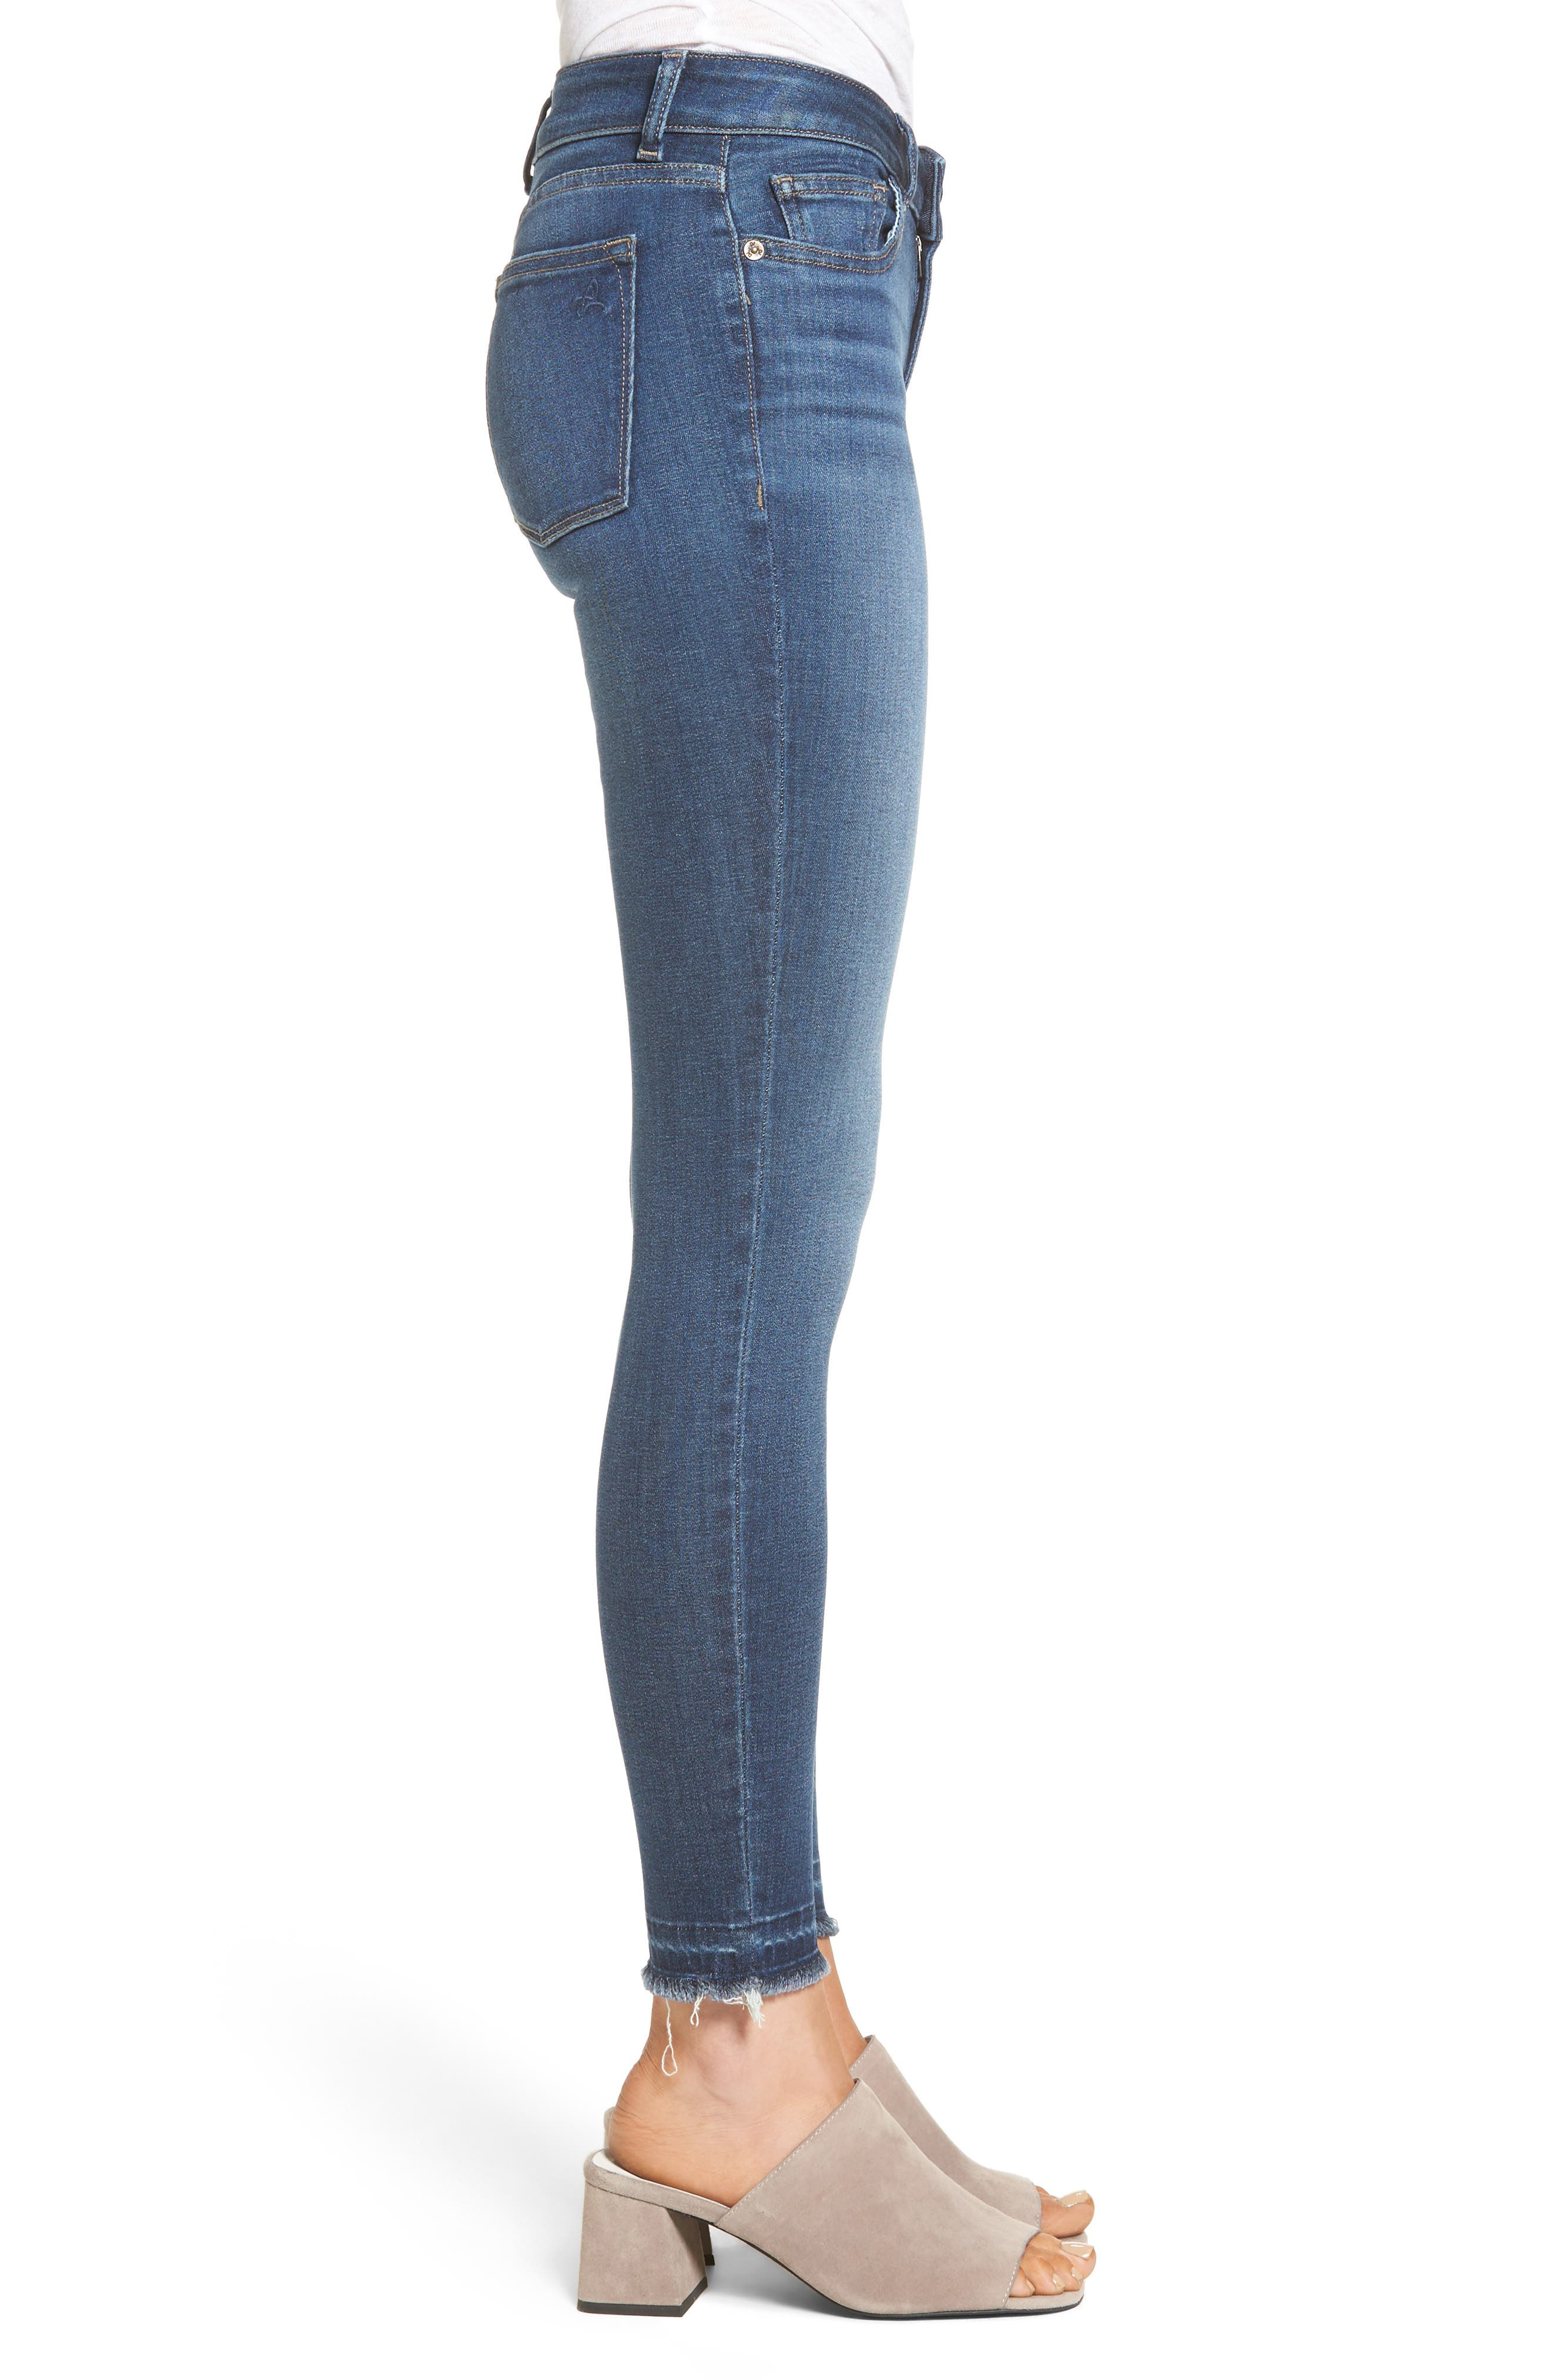 Alternate Image 3  - DL1961 Emma Power Legging Jeans (Quilter)